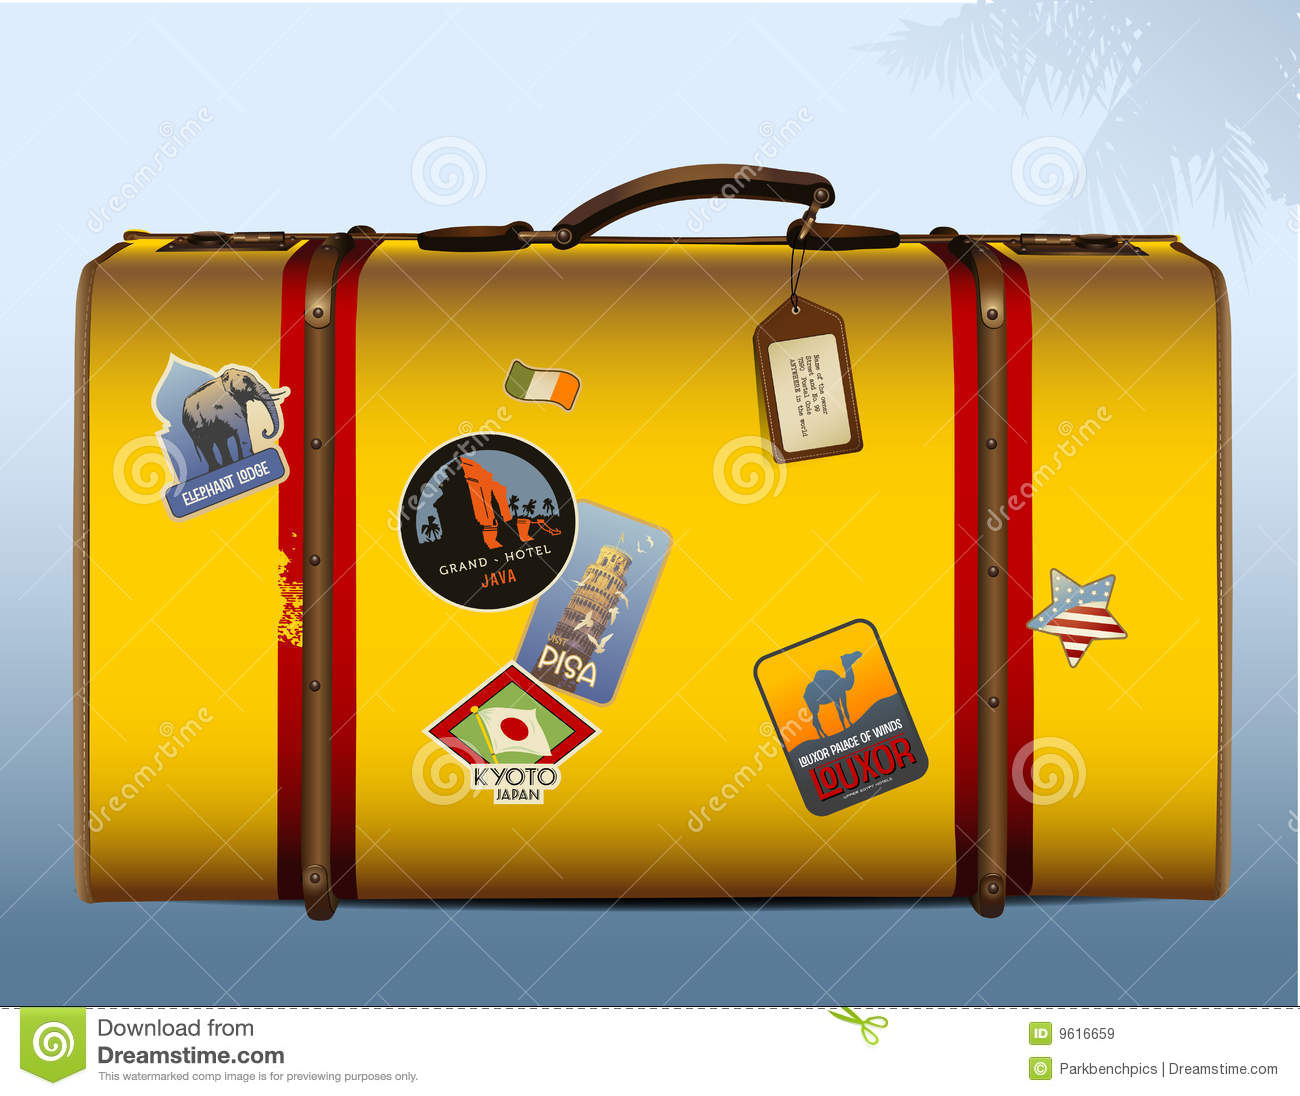 Vintage Yellow Suitcase Royalty Free Stock Images - Image: 9616659